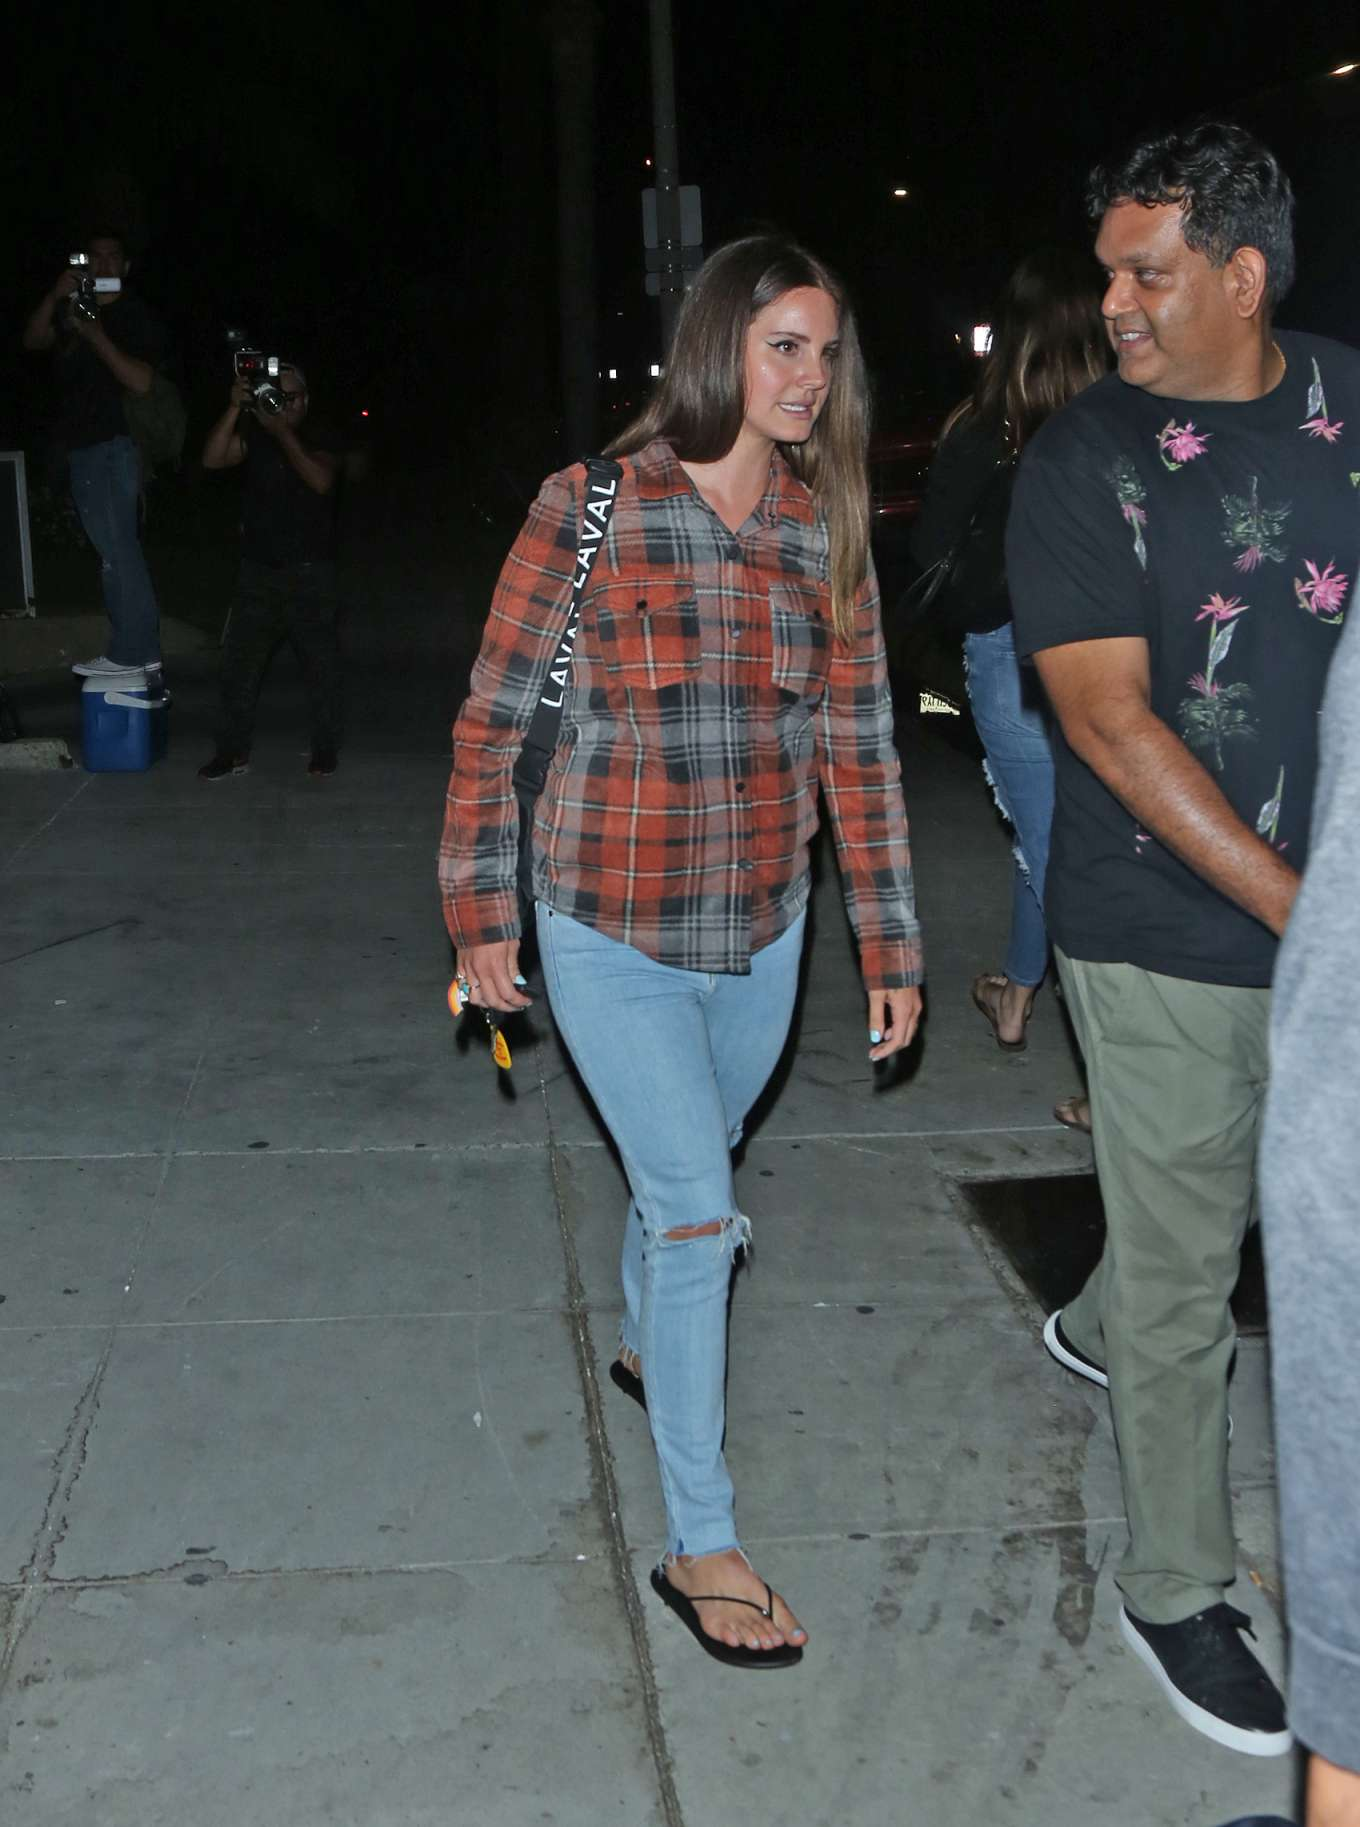 Lana Del Rey 2019 : Lana Del Rey seen leaving church service tonight in Beverly Hills-05